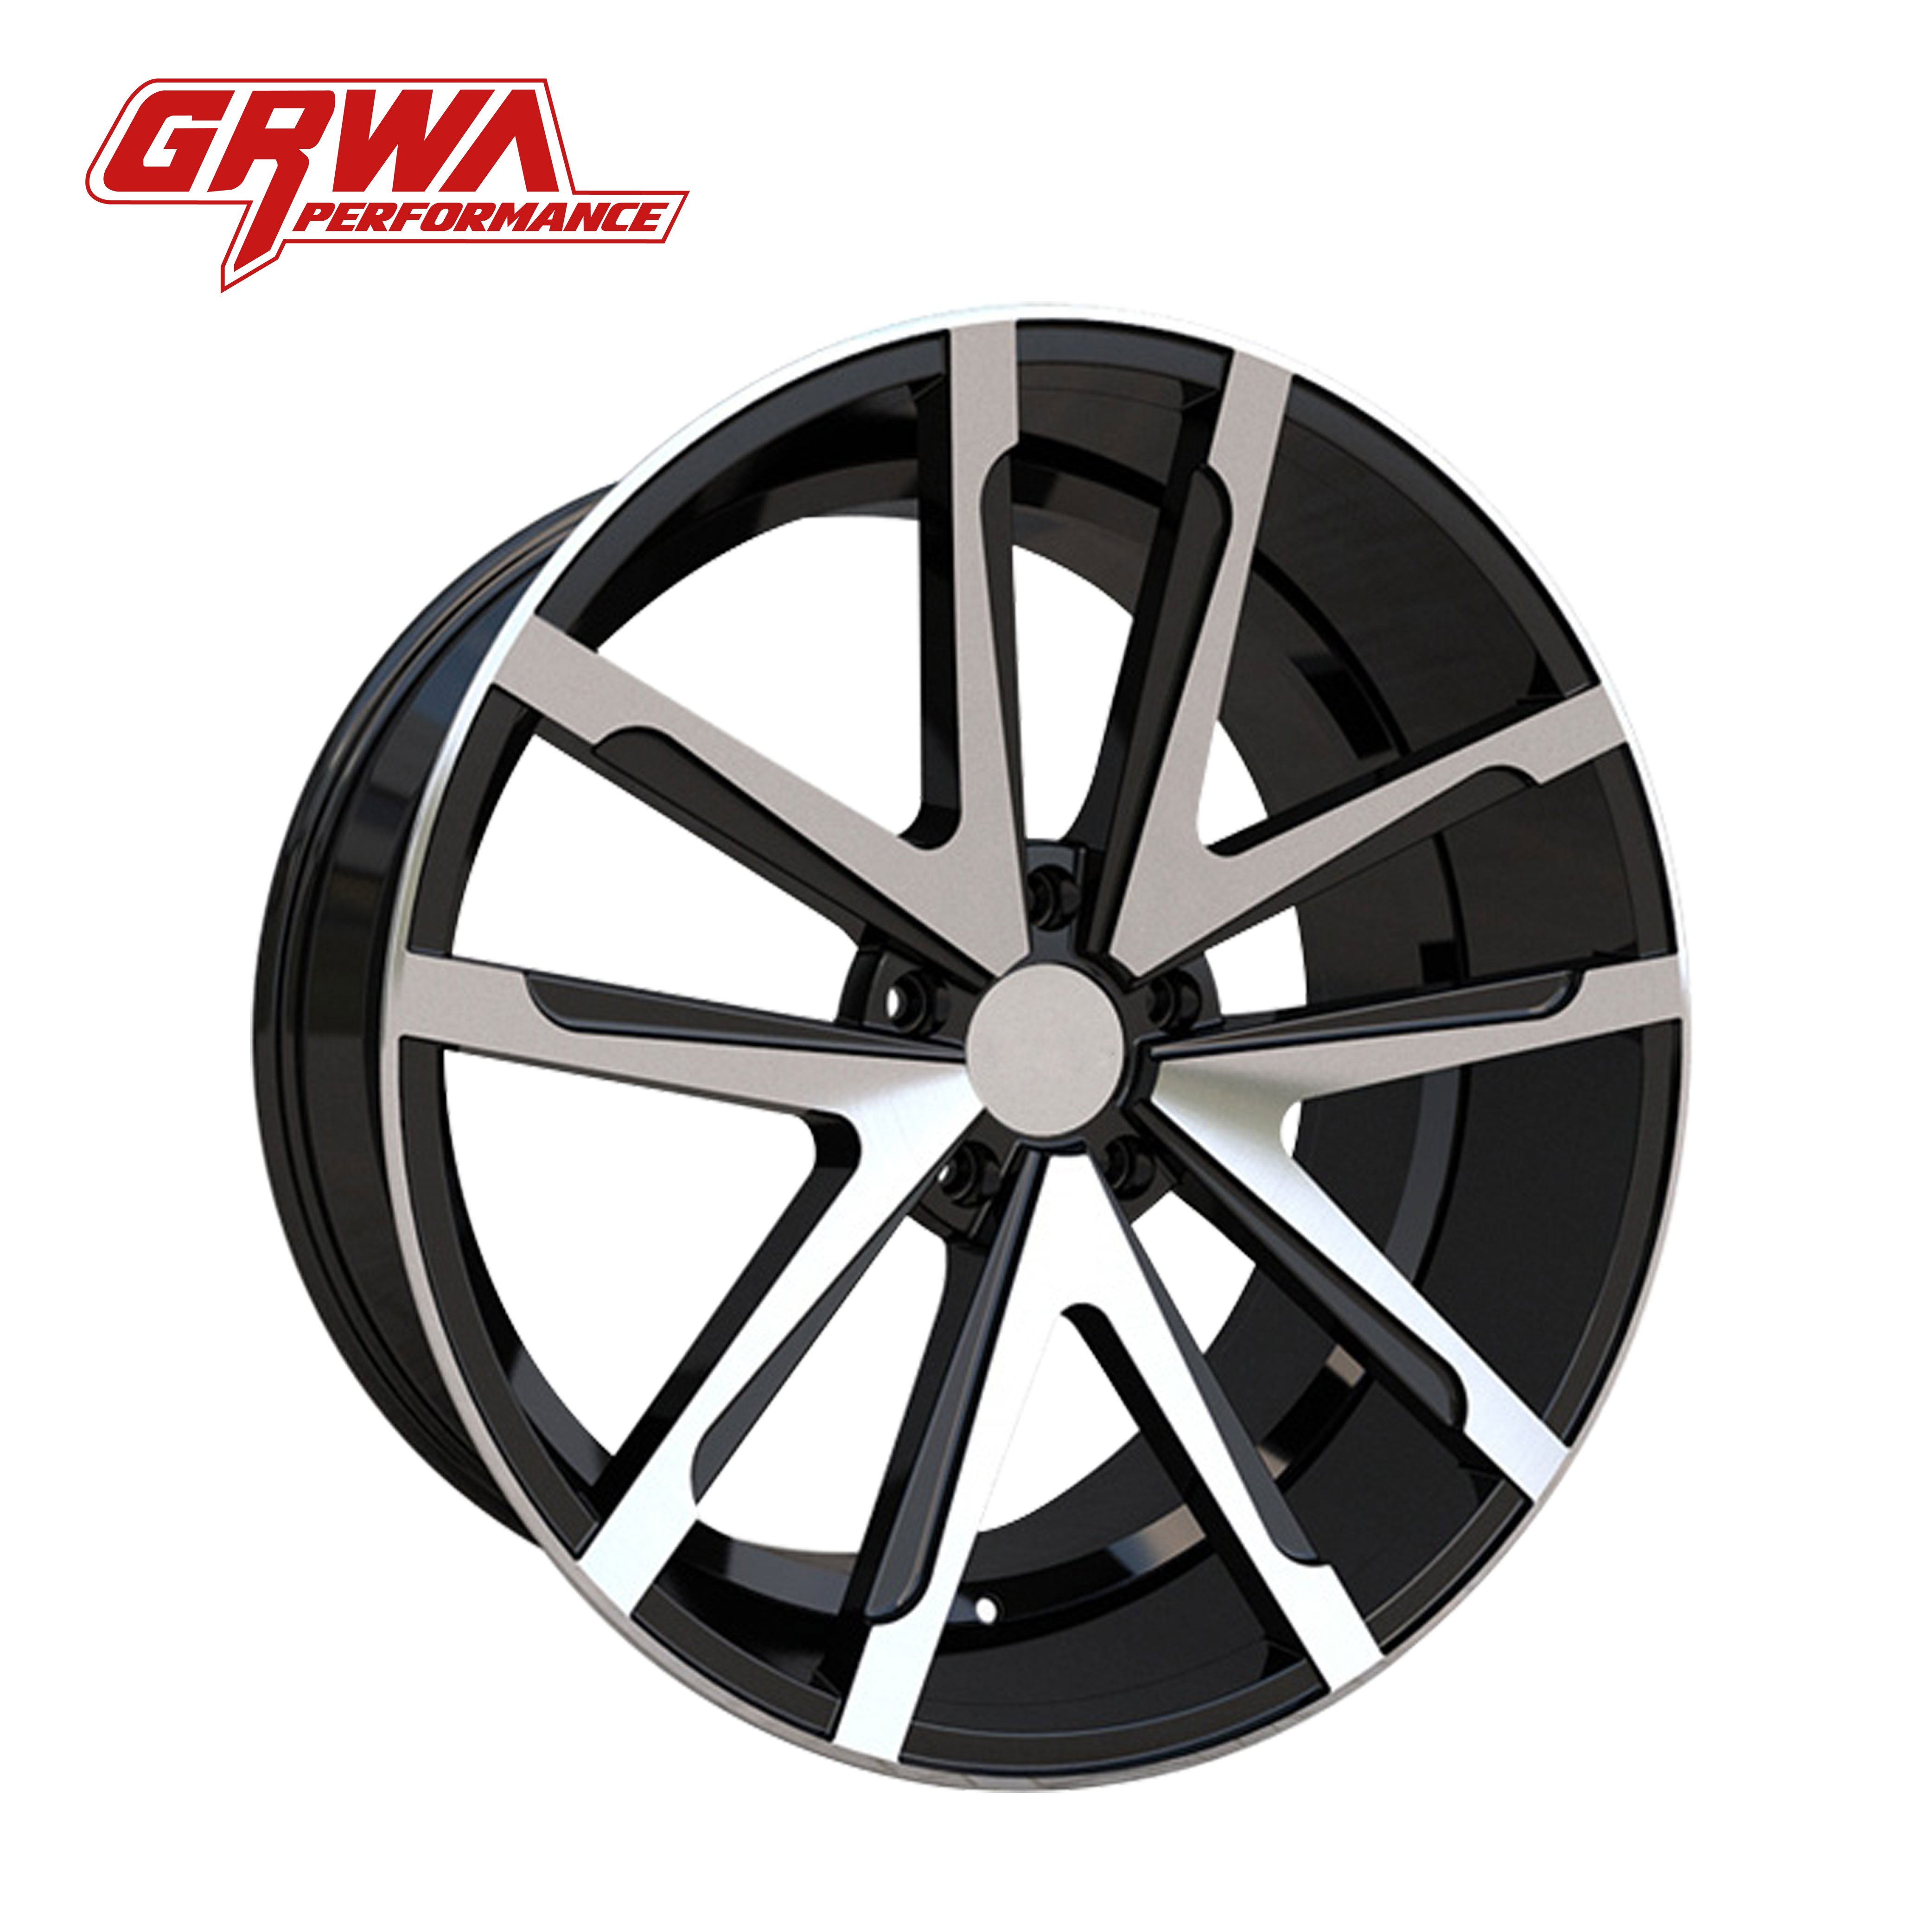 2018 GRWA high quality and cheap price Alloy Wheels  Forged Aluminum Wheels